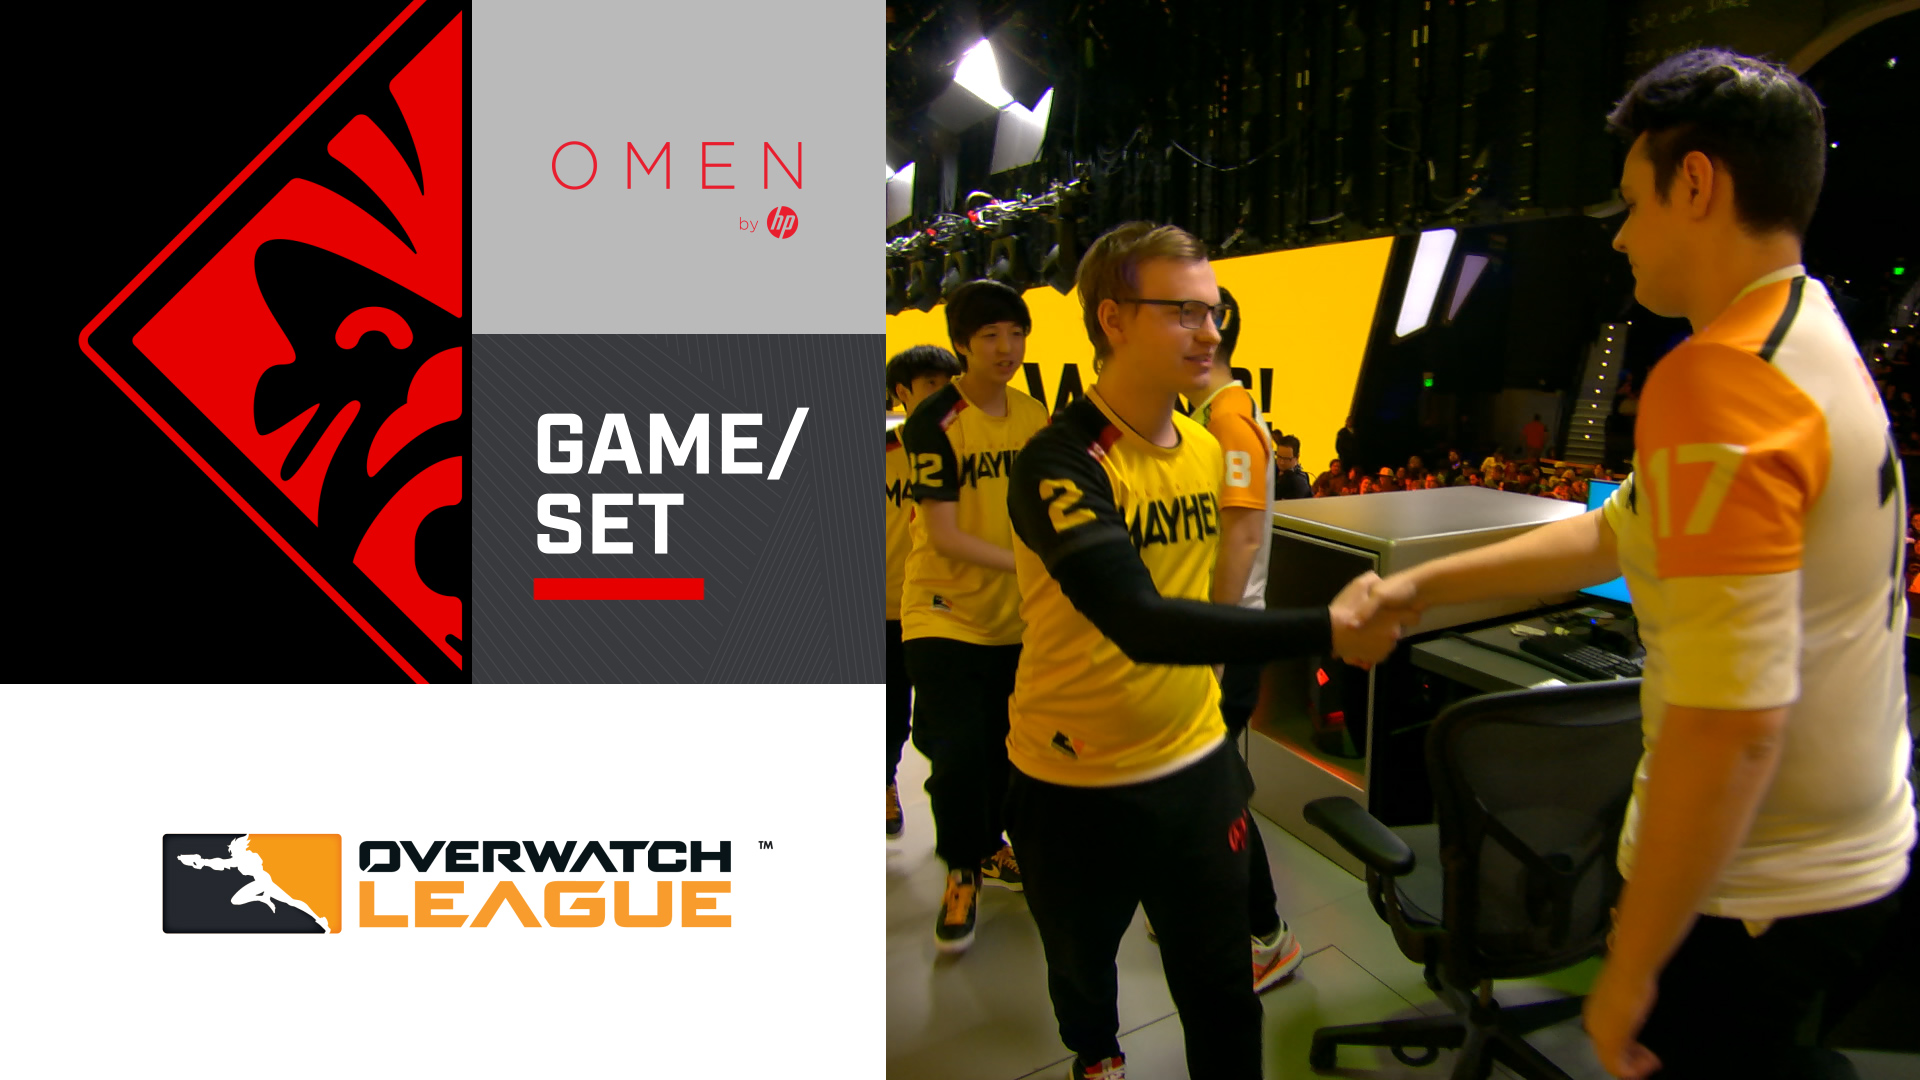 Game/Set with Florida Mayhem's Tviq